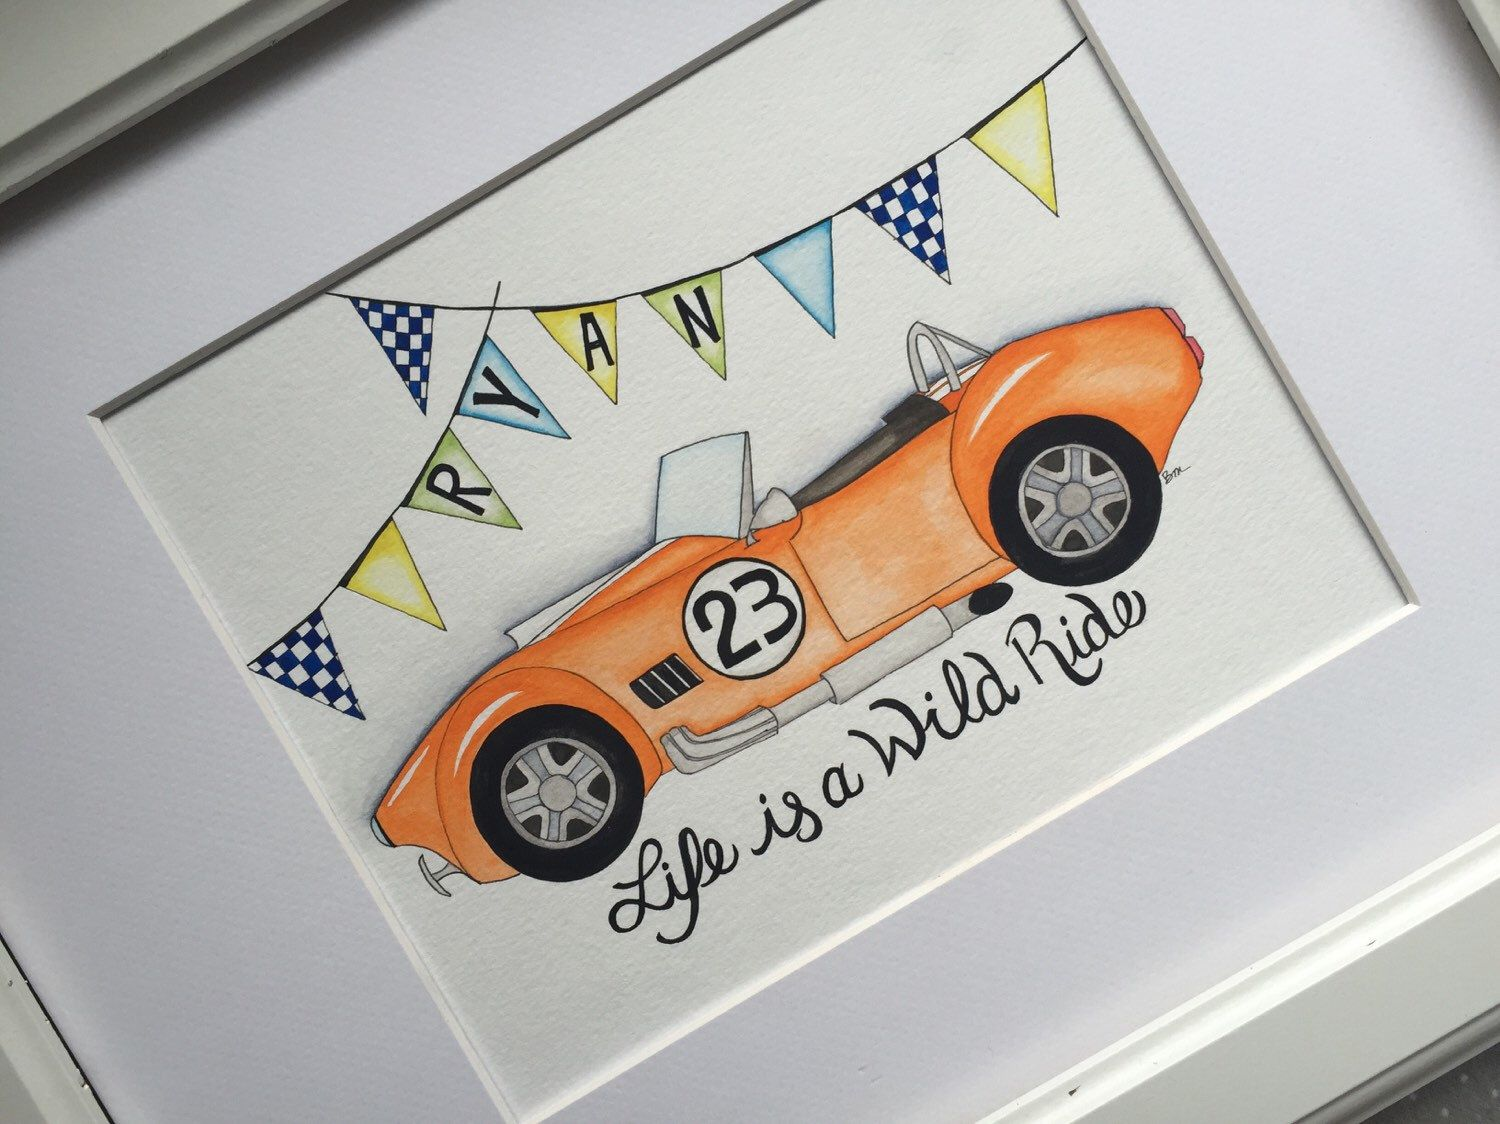 Racecar nursery wall art. Car nursery decor. Personalized nursery decor. by BMonteDesigns on Etsy https://www.etsy.com/listing/237544236/racecar-nursery-wall-art-car-nursery